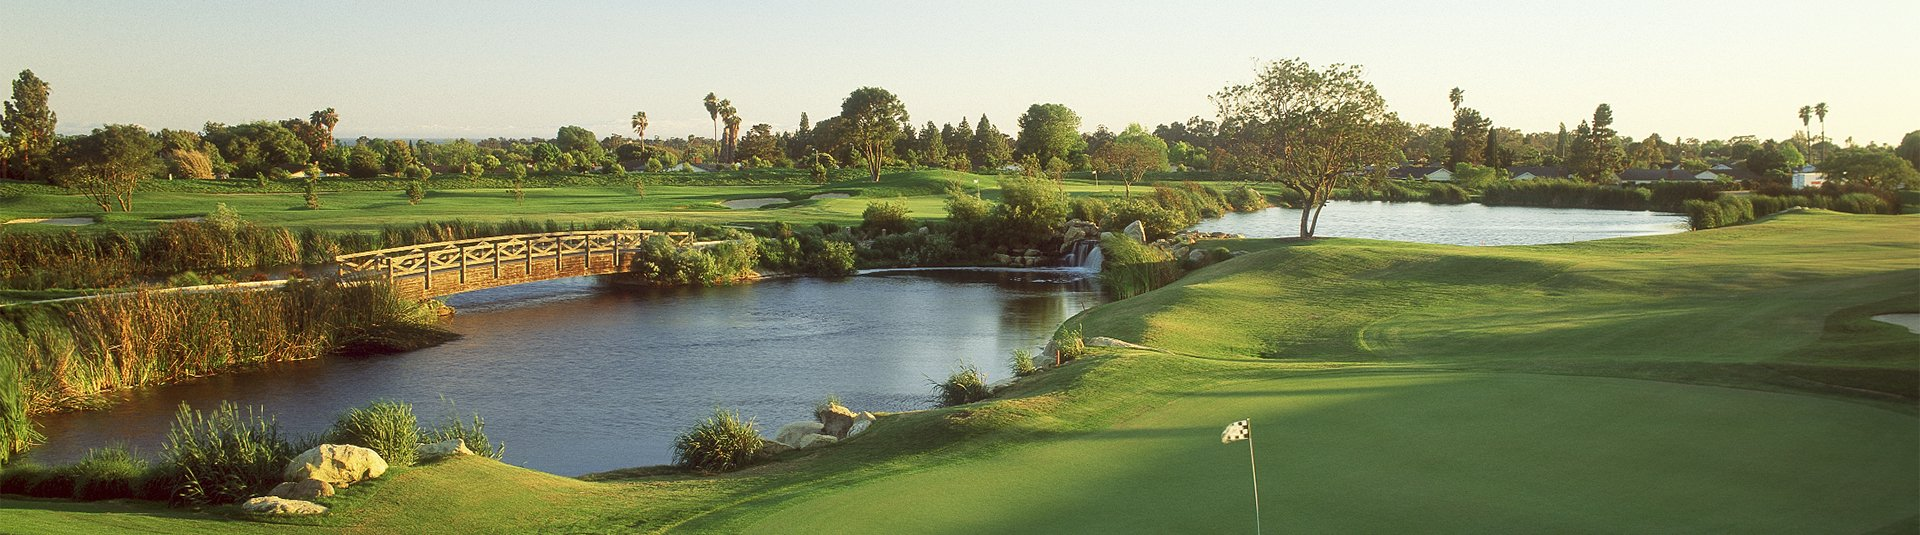 Glen Annie Golf Club is a great spot for a California golf getaway